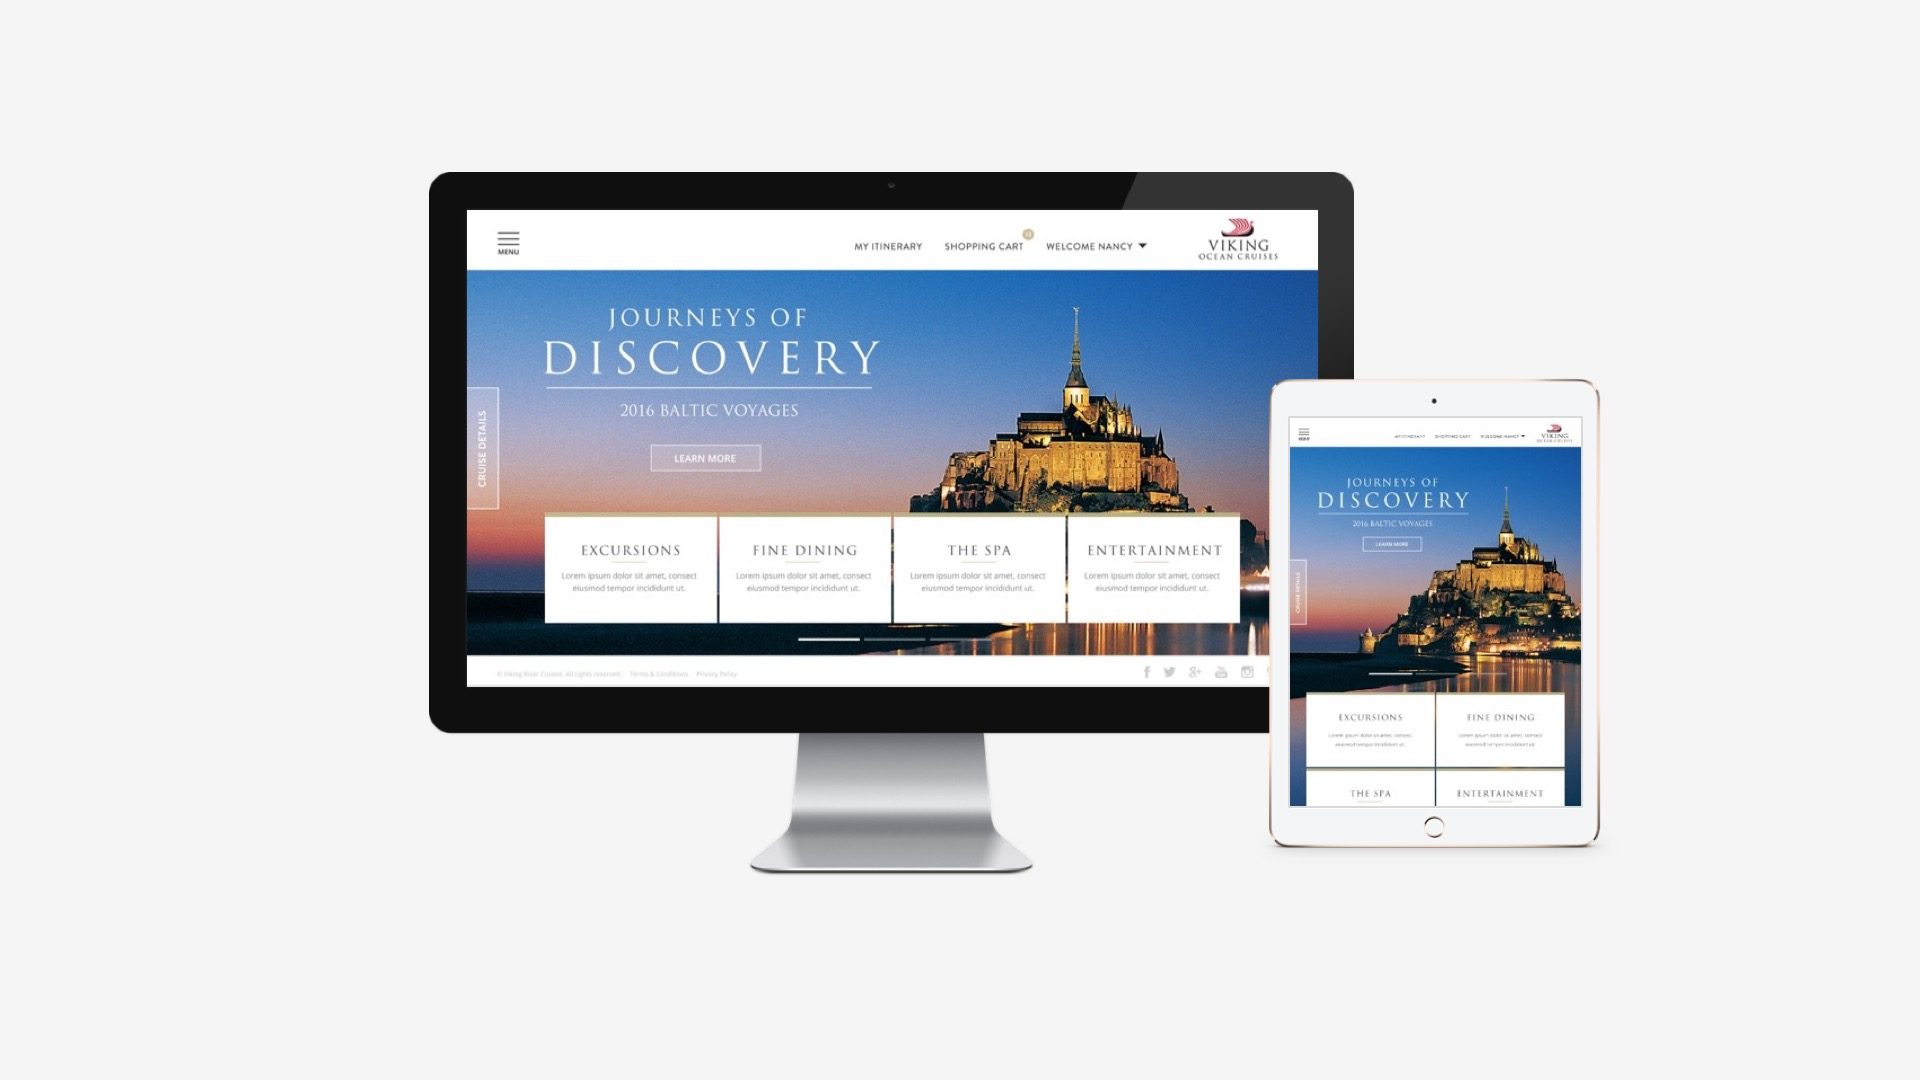 Viking Cruises: My Viking Journey Design